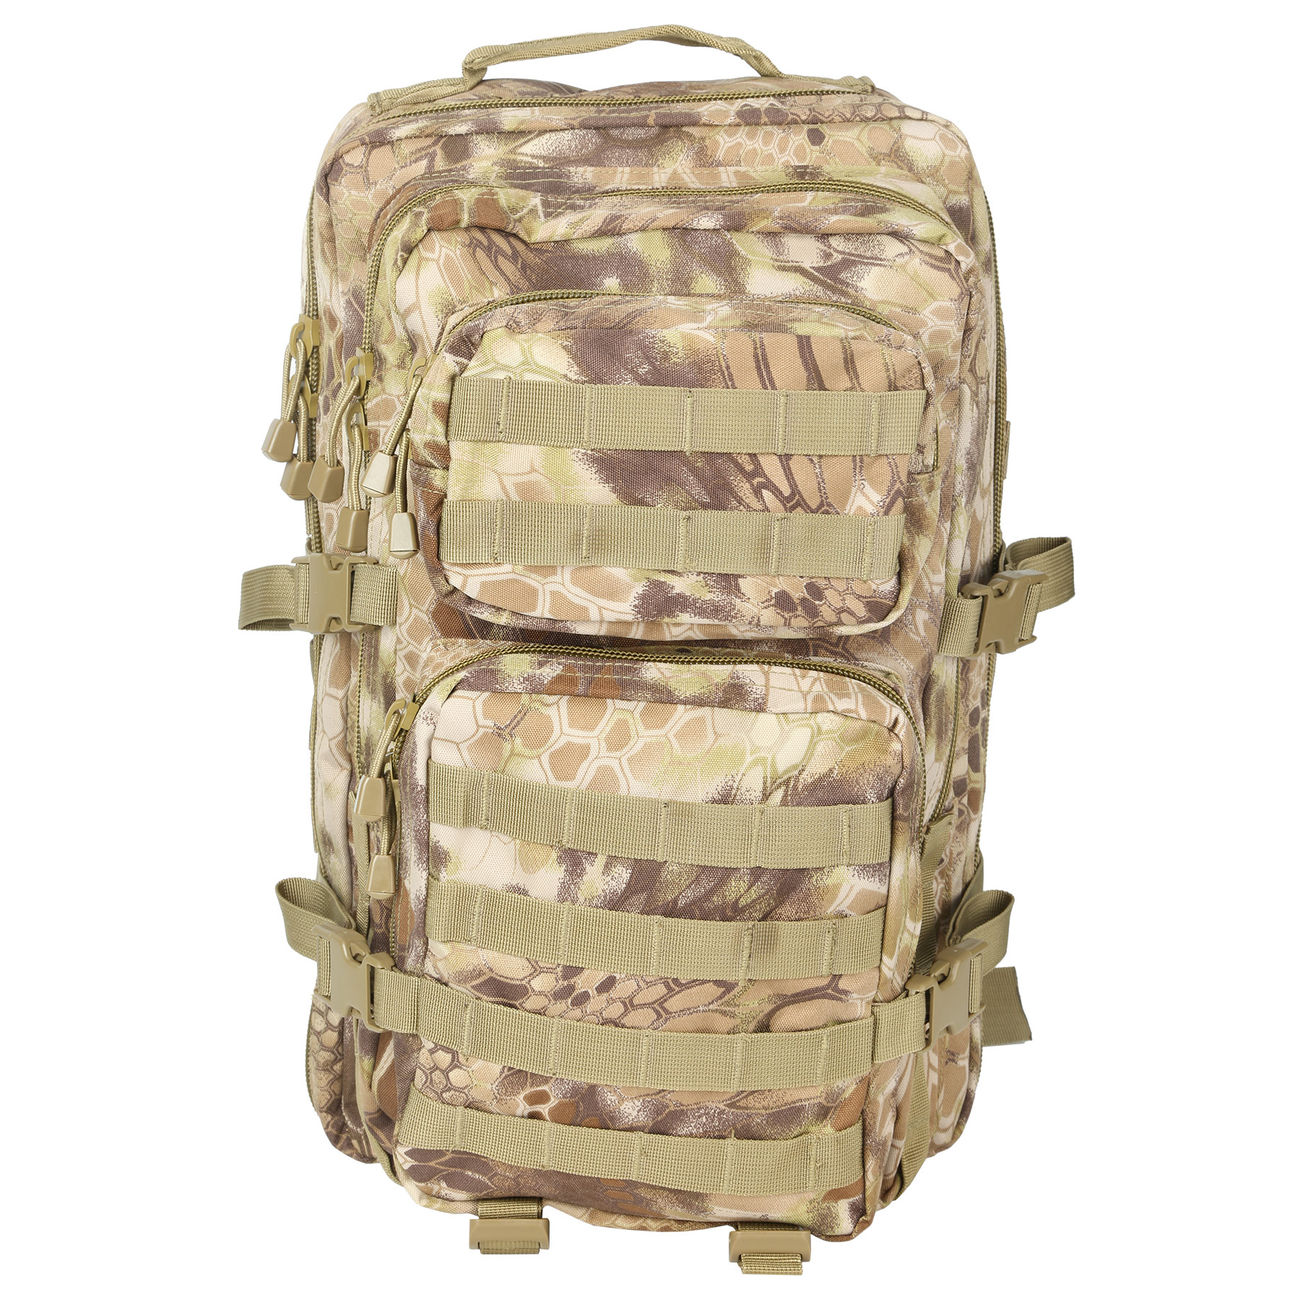 Mil-Tec Rucksack US Assault Pack II 40 Liter mandra tan 6